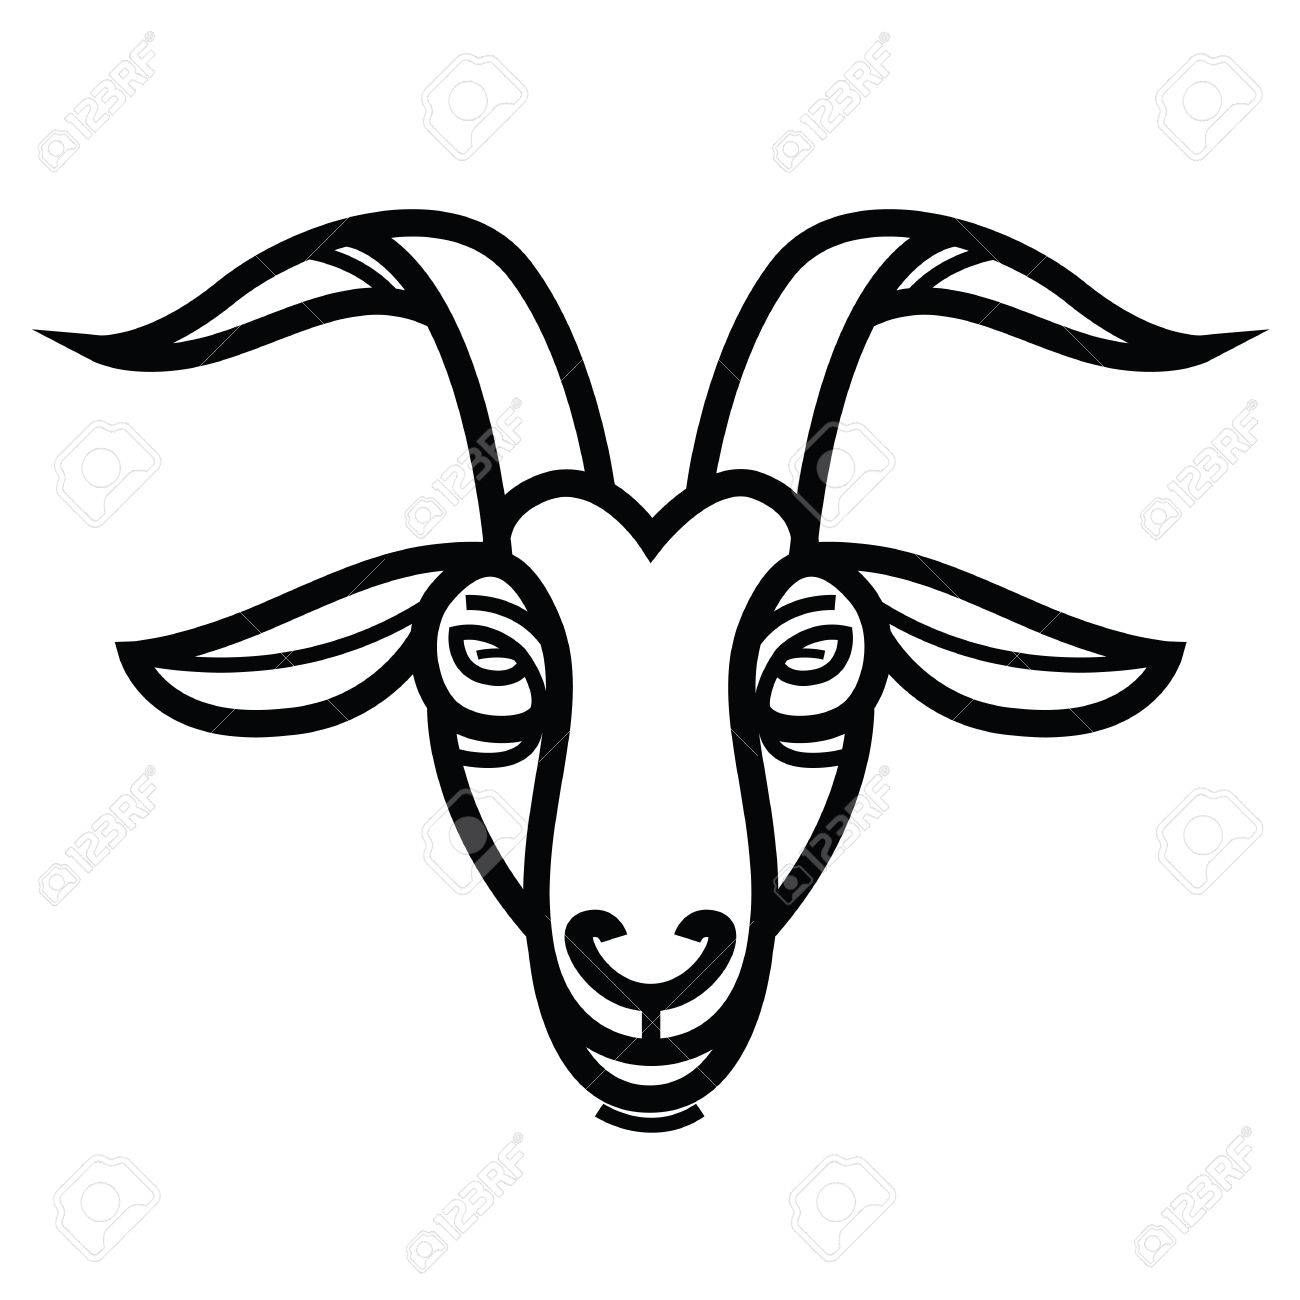 Linear stylized drawing - Goat's head - for icon or sign template